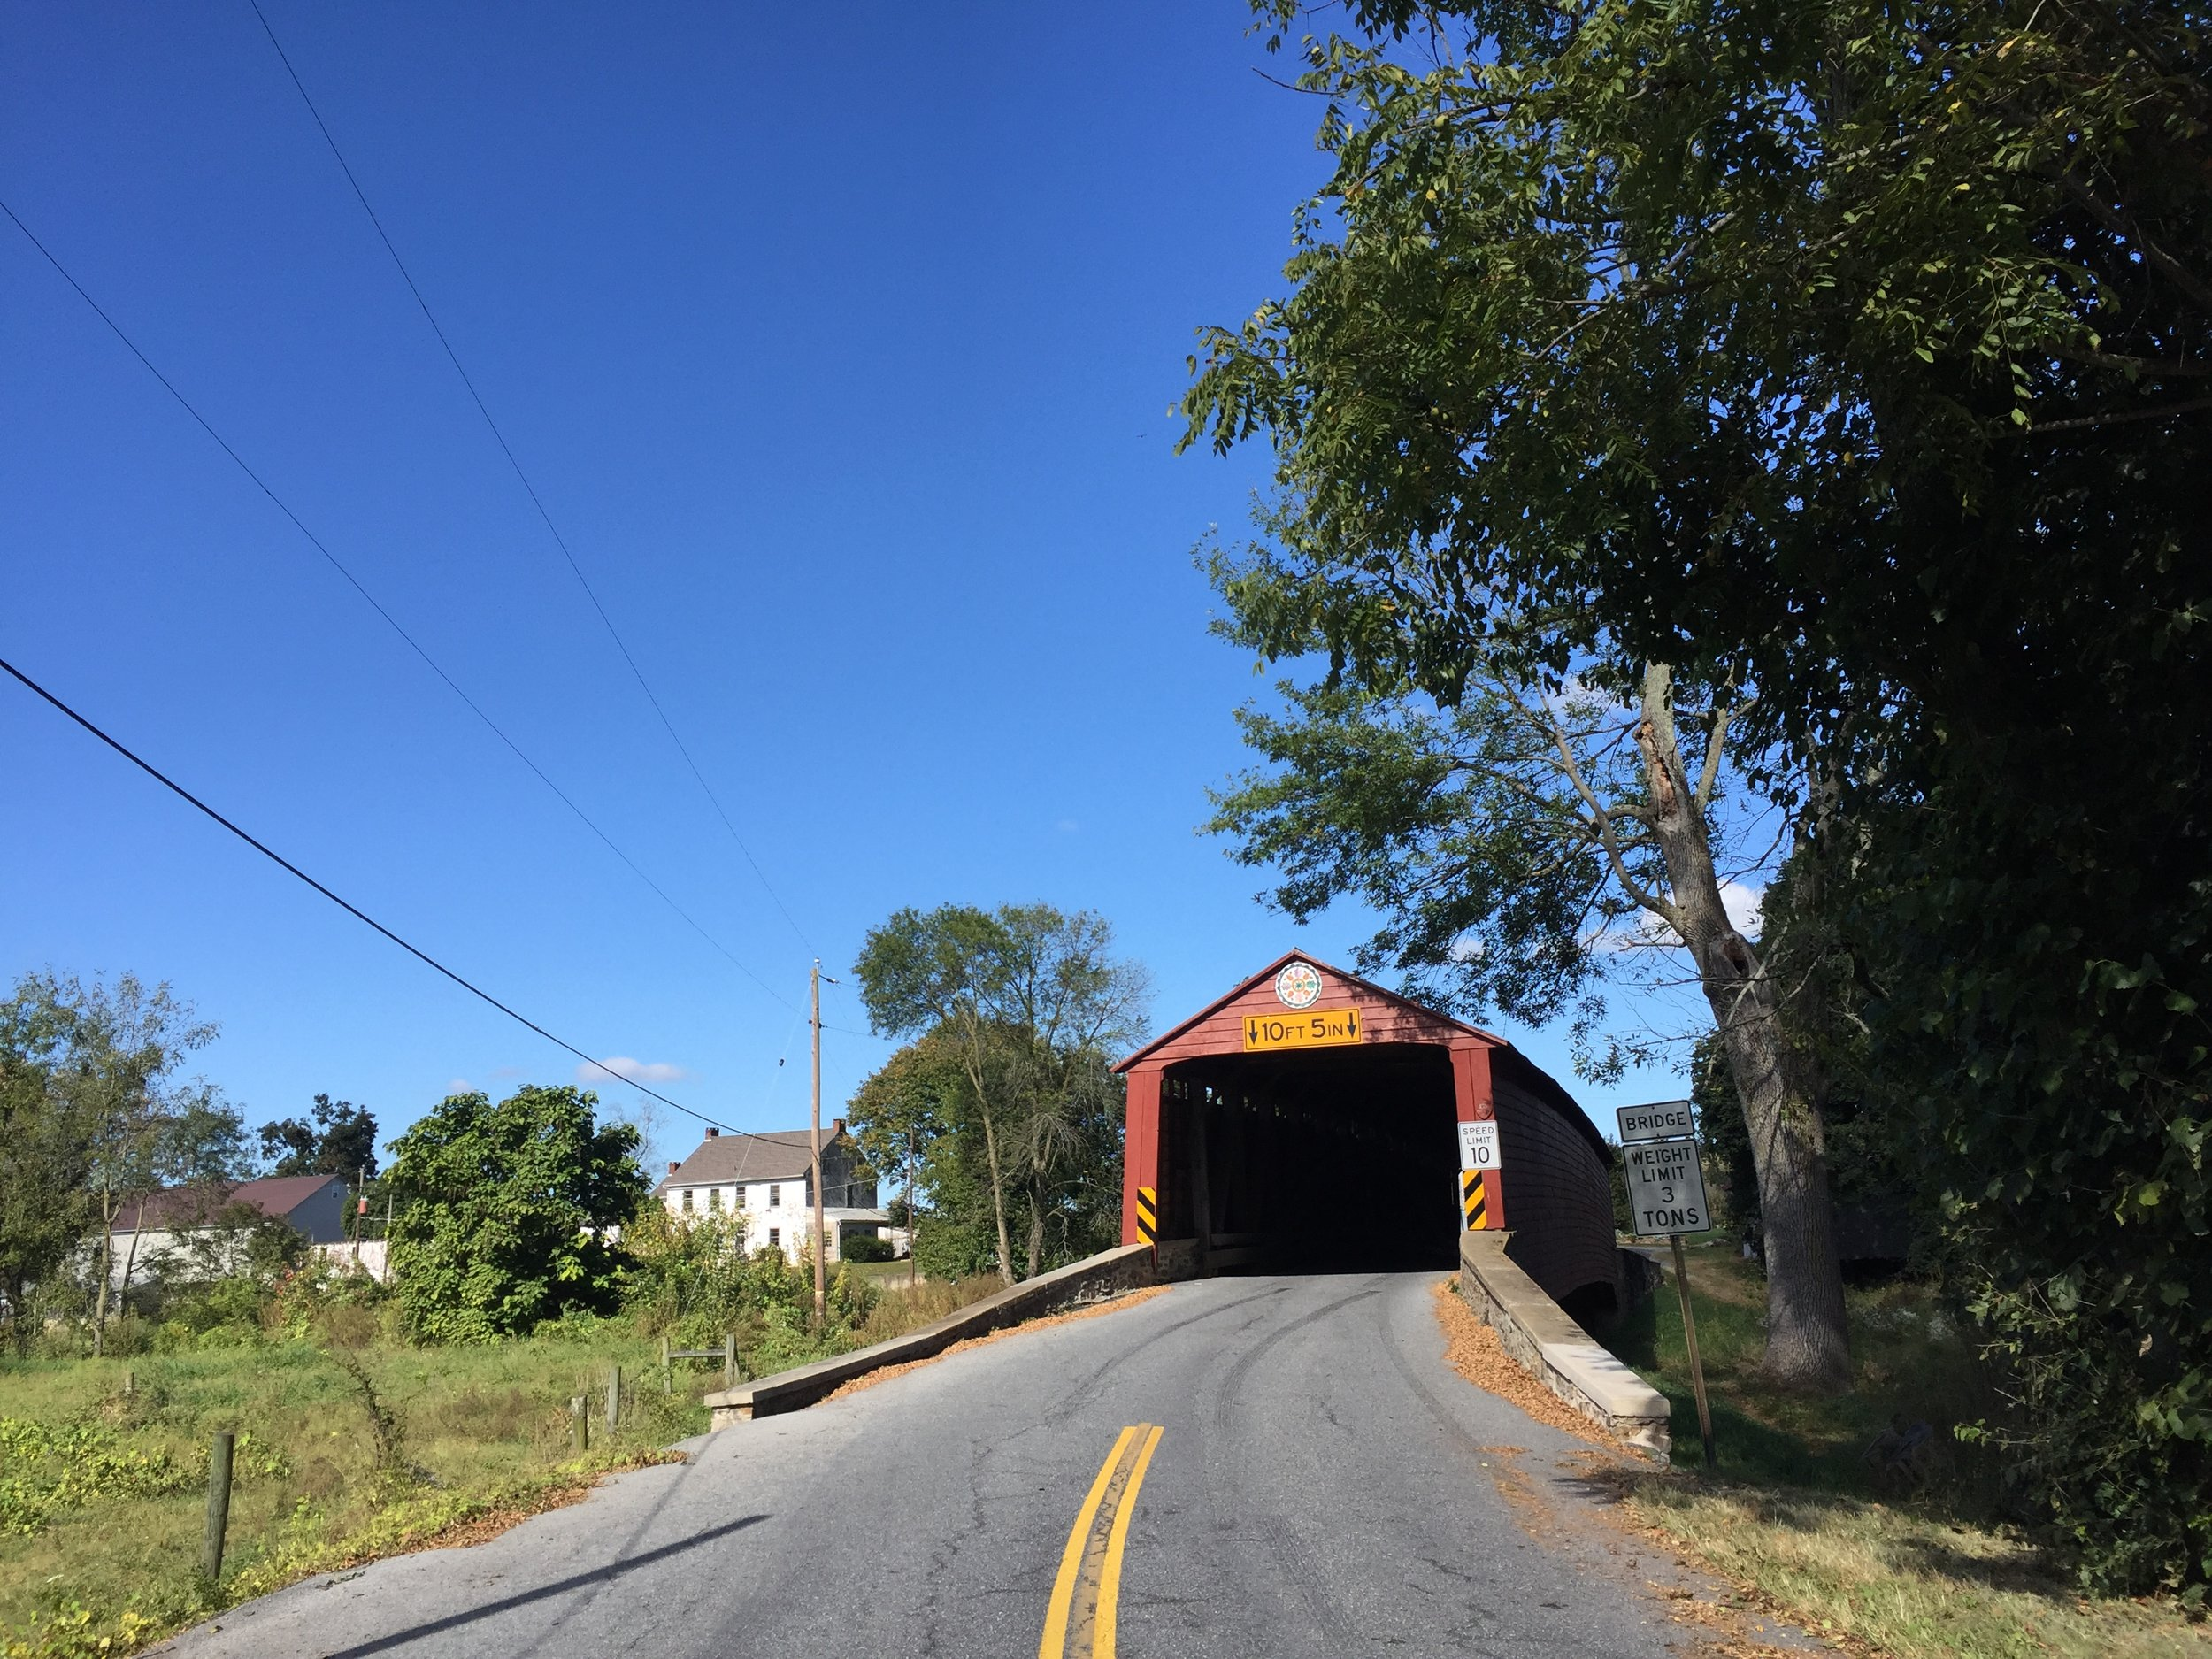 This is the only covered bridge on the route though a second covered bridge could easily be added earlier in the route.